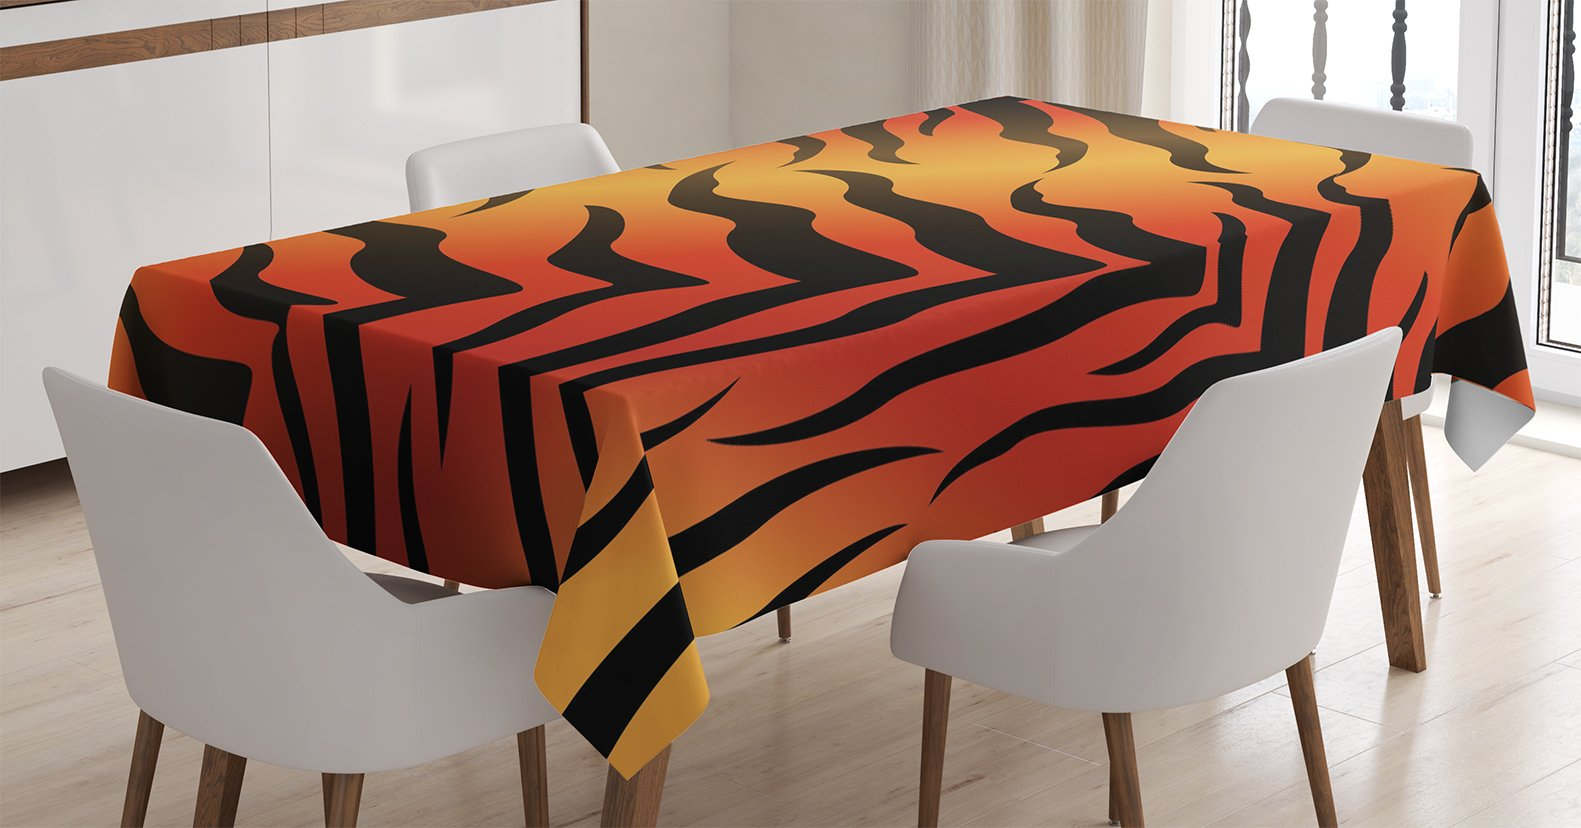 Ambesonne Animal Print Decor Tablecloth, Abstract Tiger Skin Pattern Wildlife Nature Themed Fashionable Illustration, Rectangular Table Cover for Dining Room Kitchen, 60x84 Inches, Red yellow Black